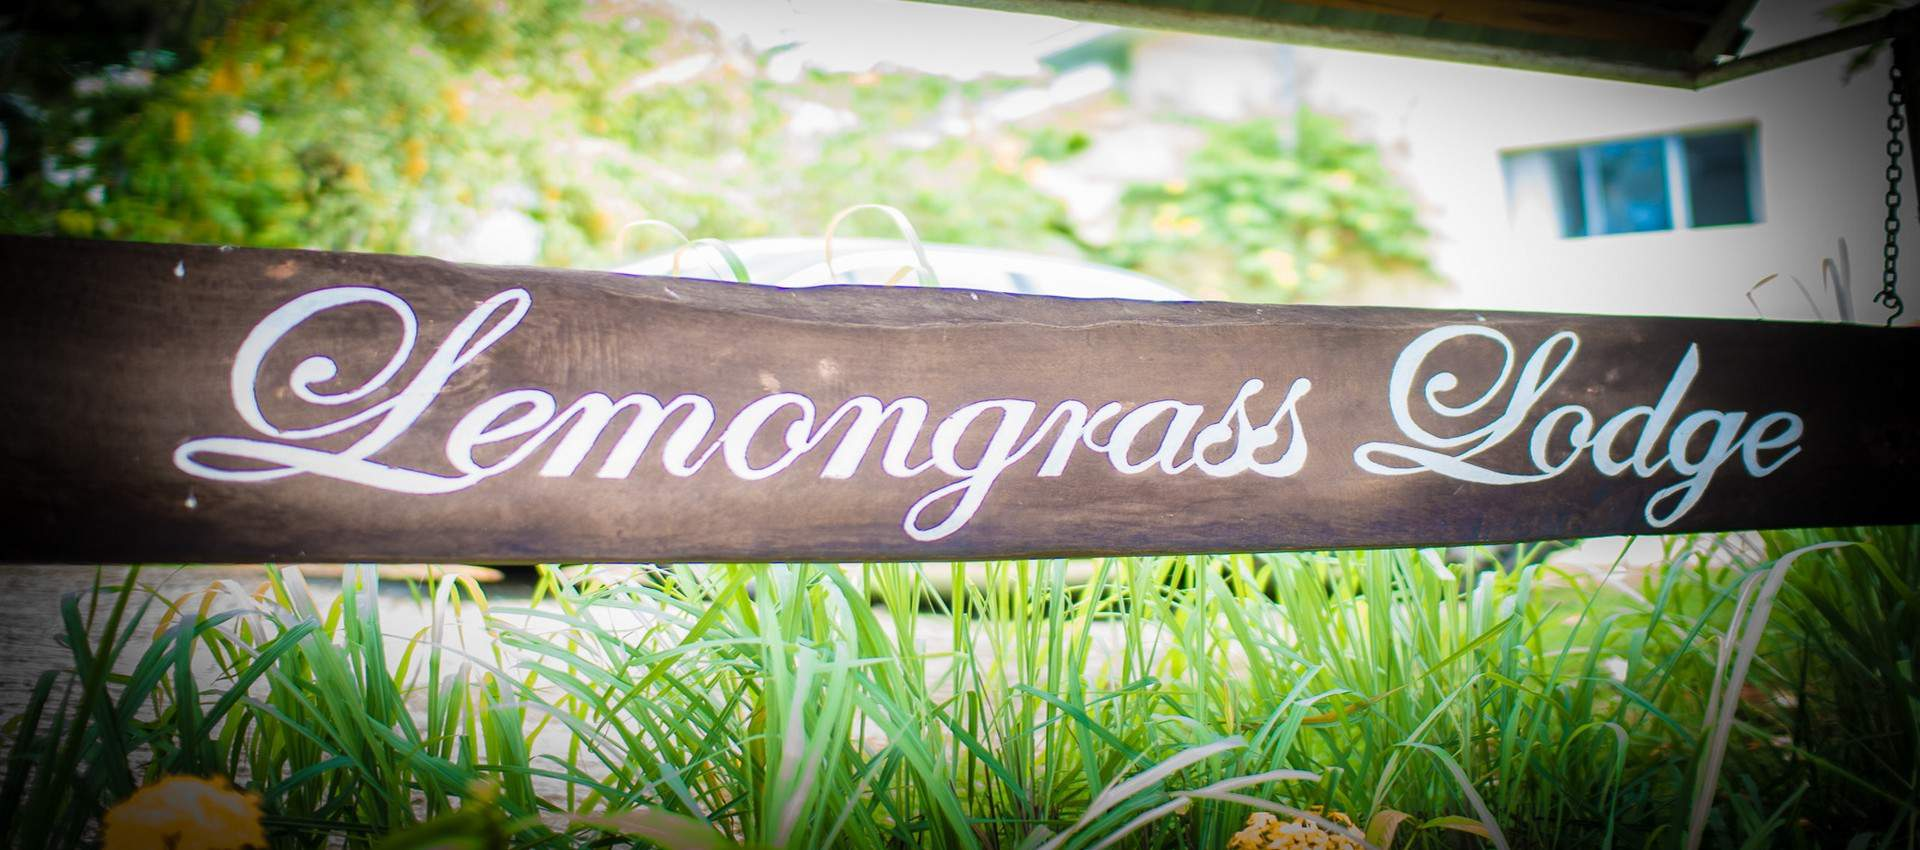 Lemongrass Lodge - Banner